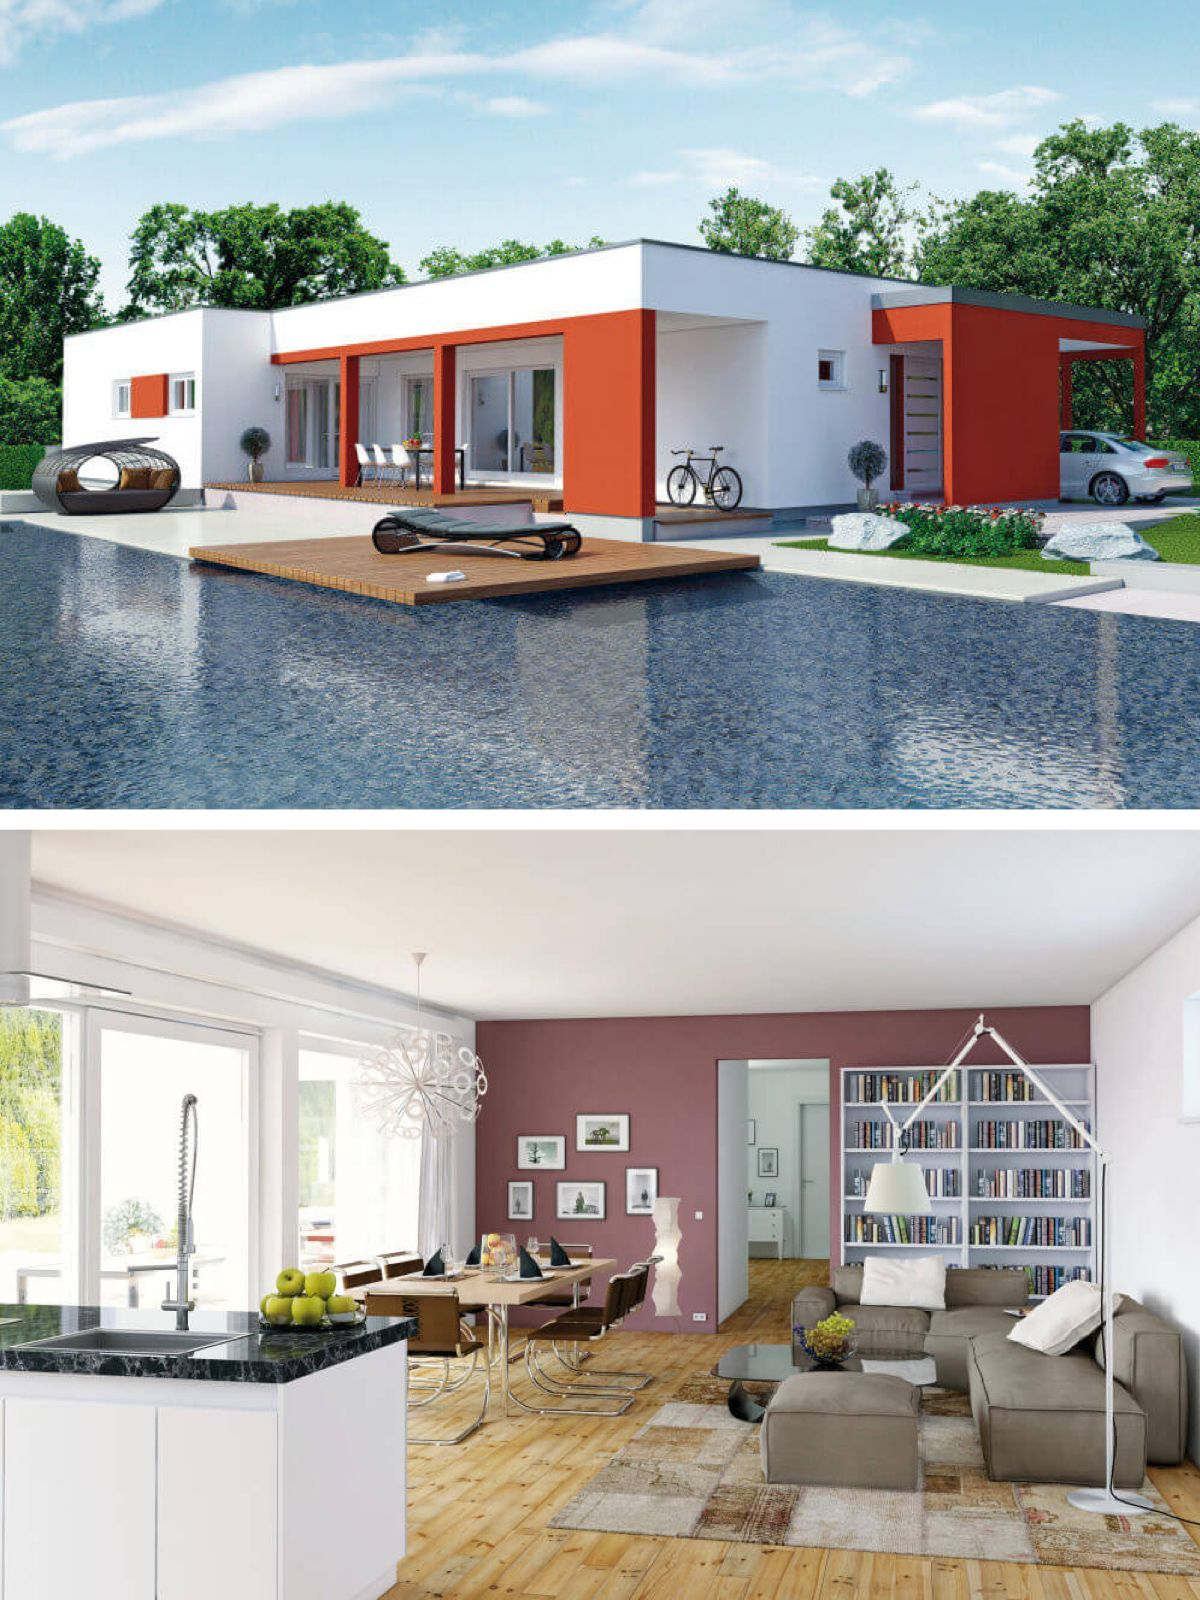 bungalow haus modern mit flachdach architektur fassade rot. Black Bedroom Furniture Sets. Home Design Ideas